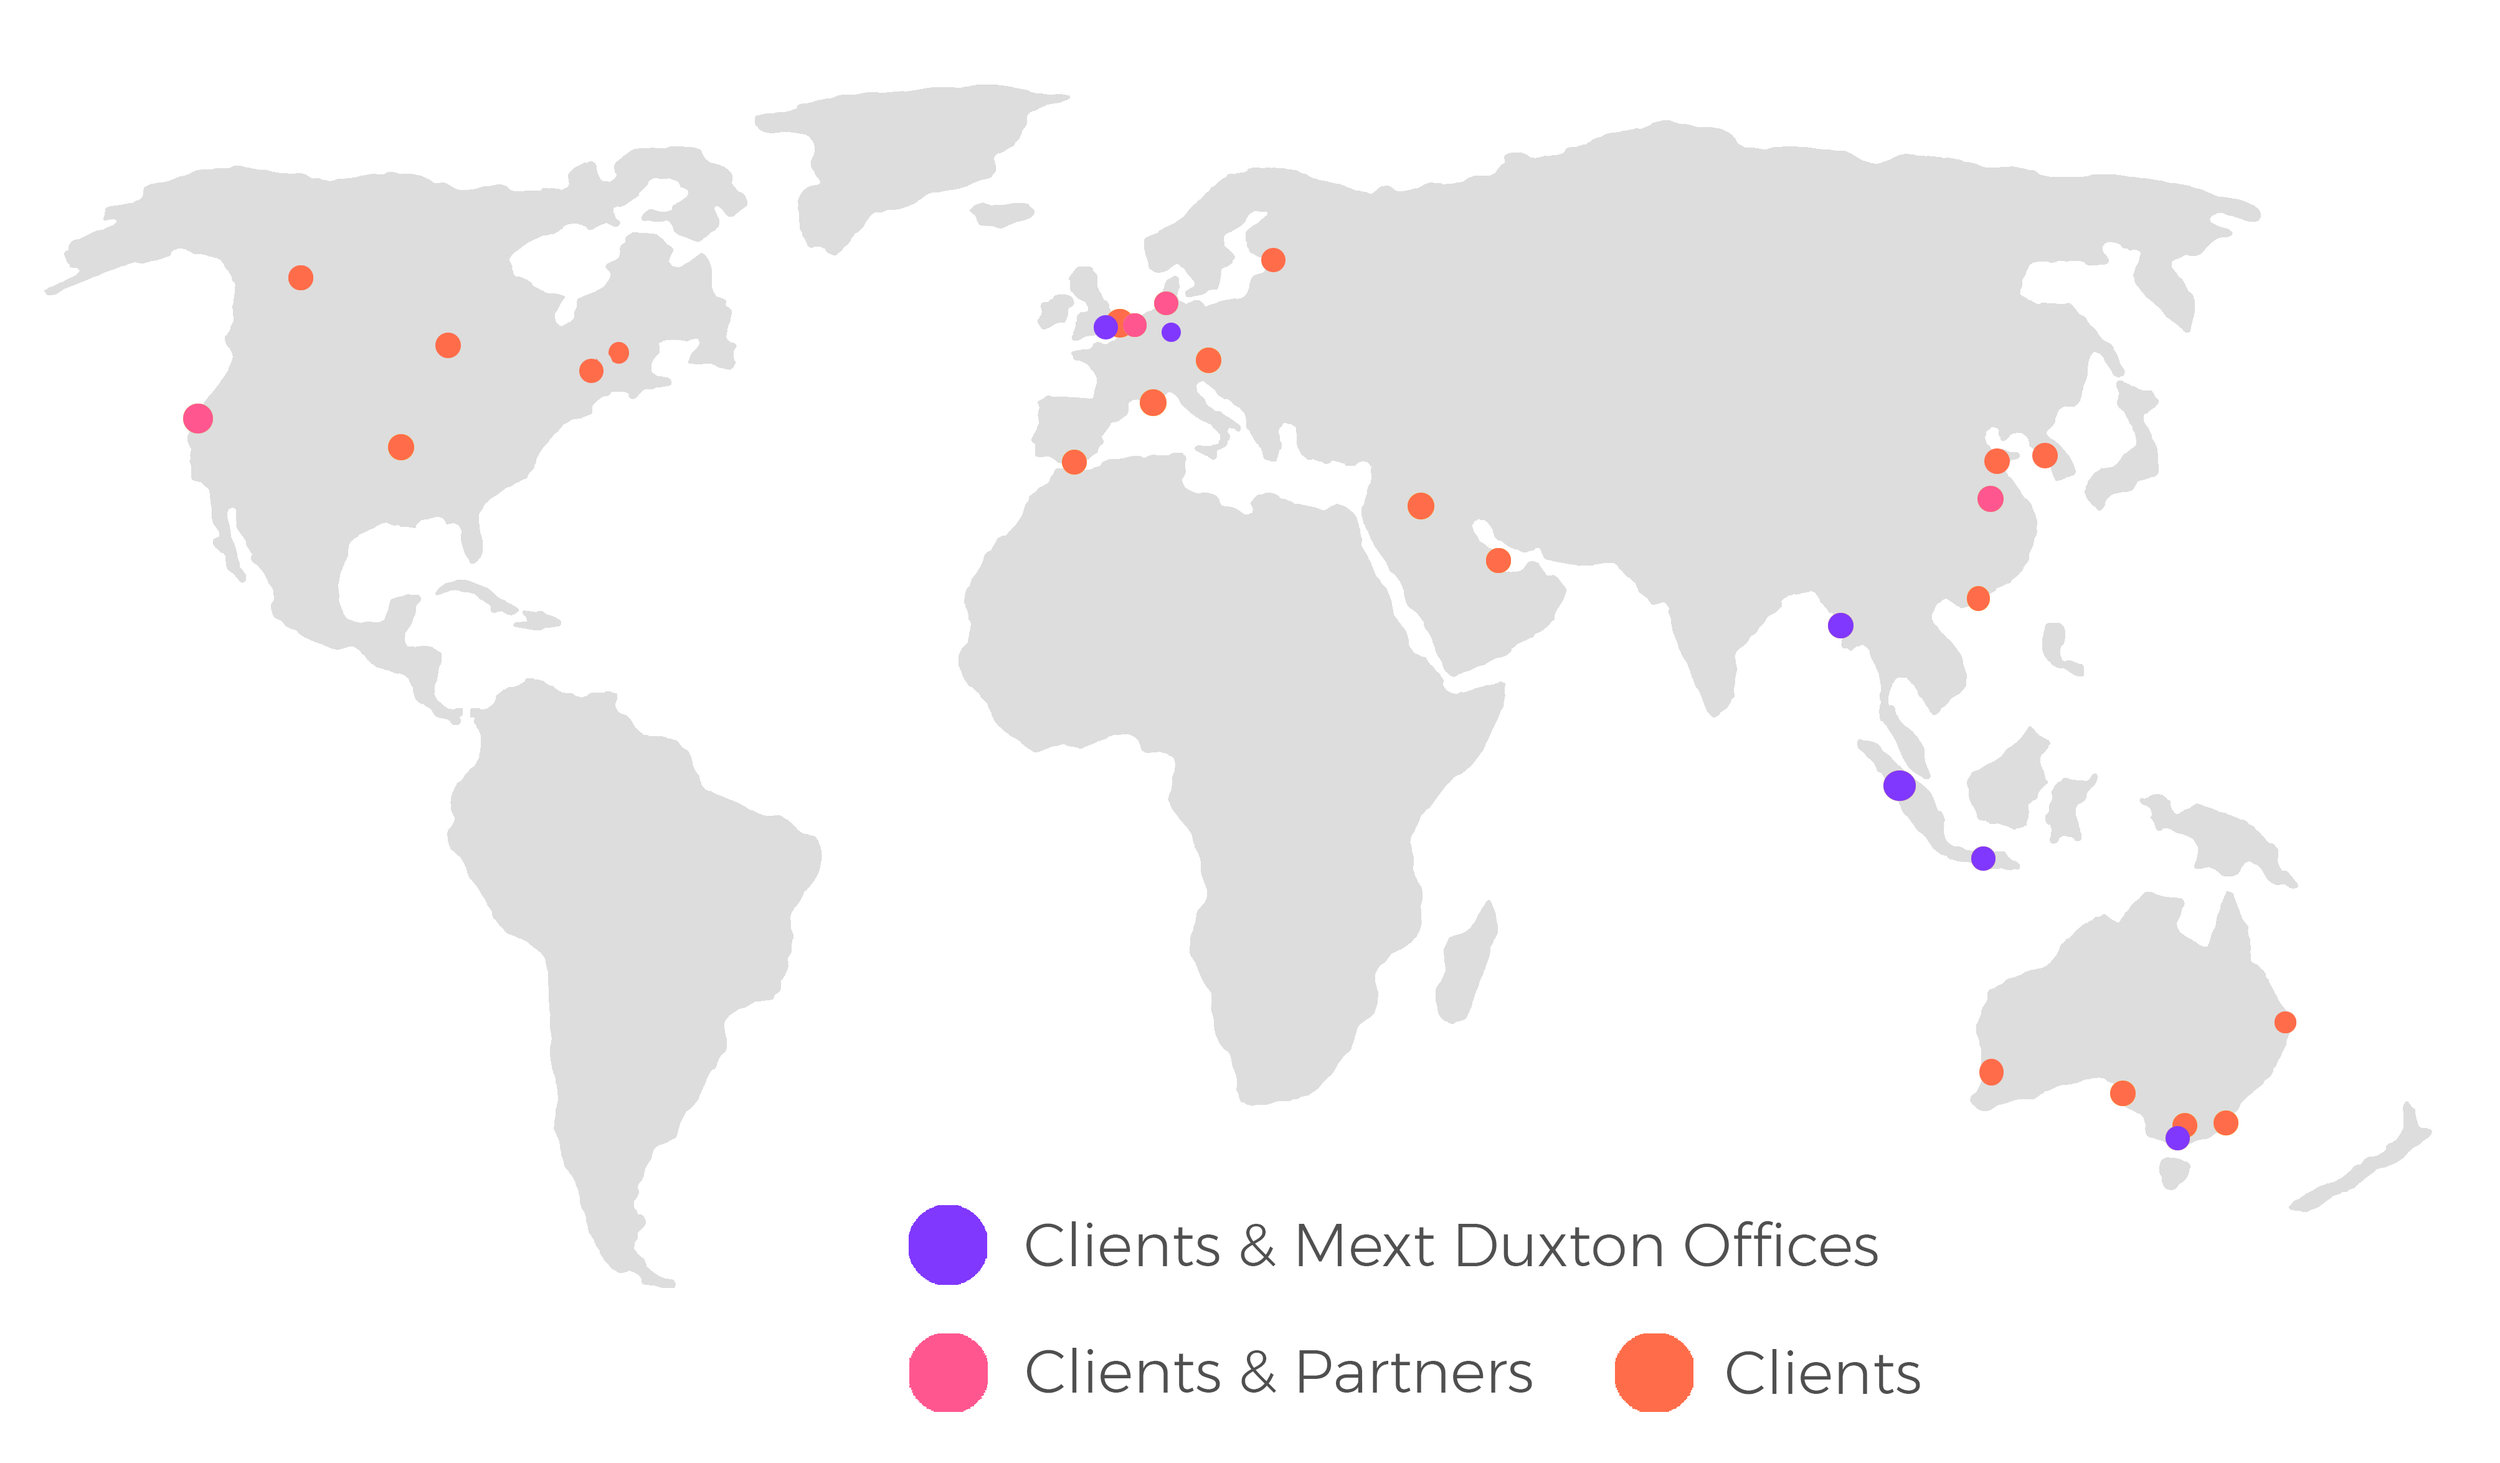 Mext_Consulting_Firm_Melbourne_Germany_UK_Asia_America_World_Map_Offices_Clients_Partners.jpg